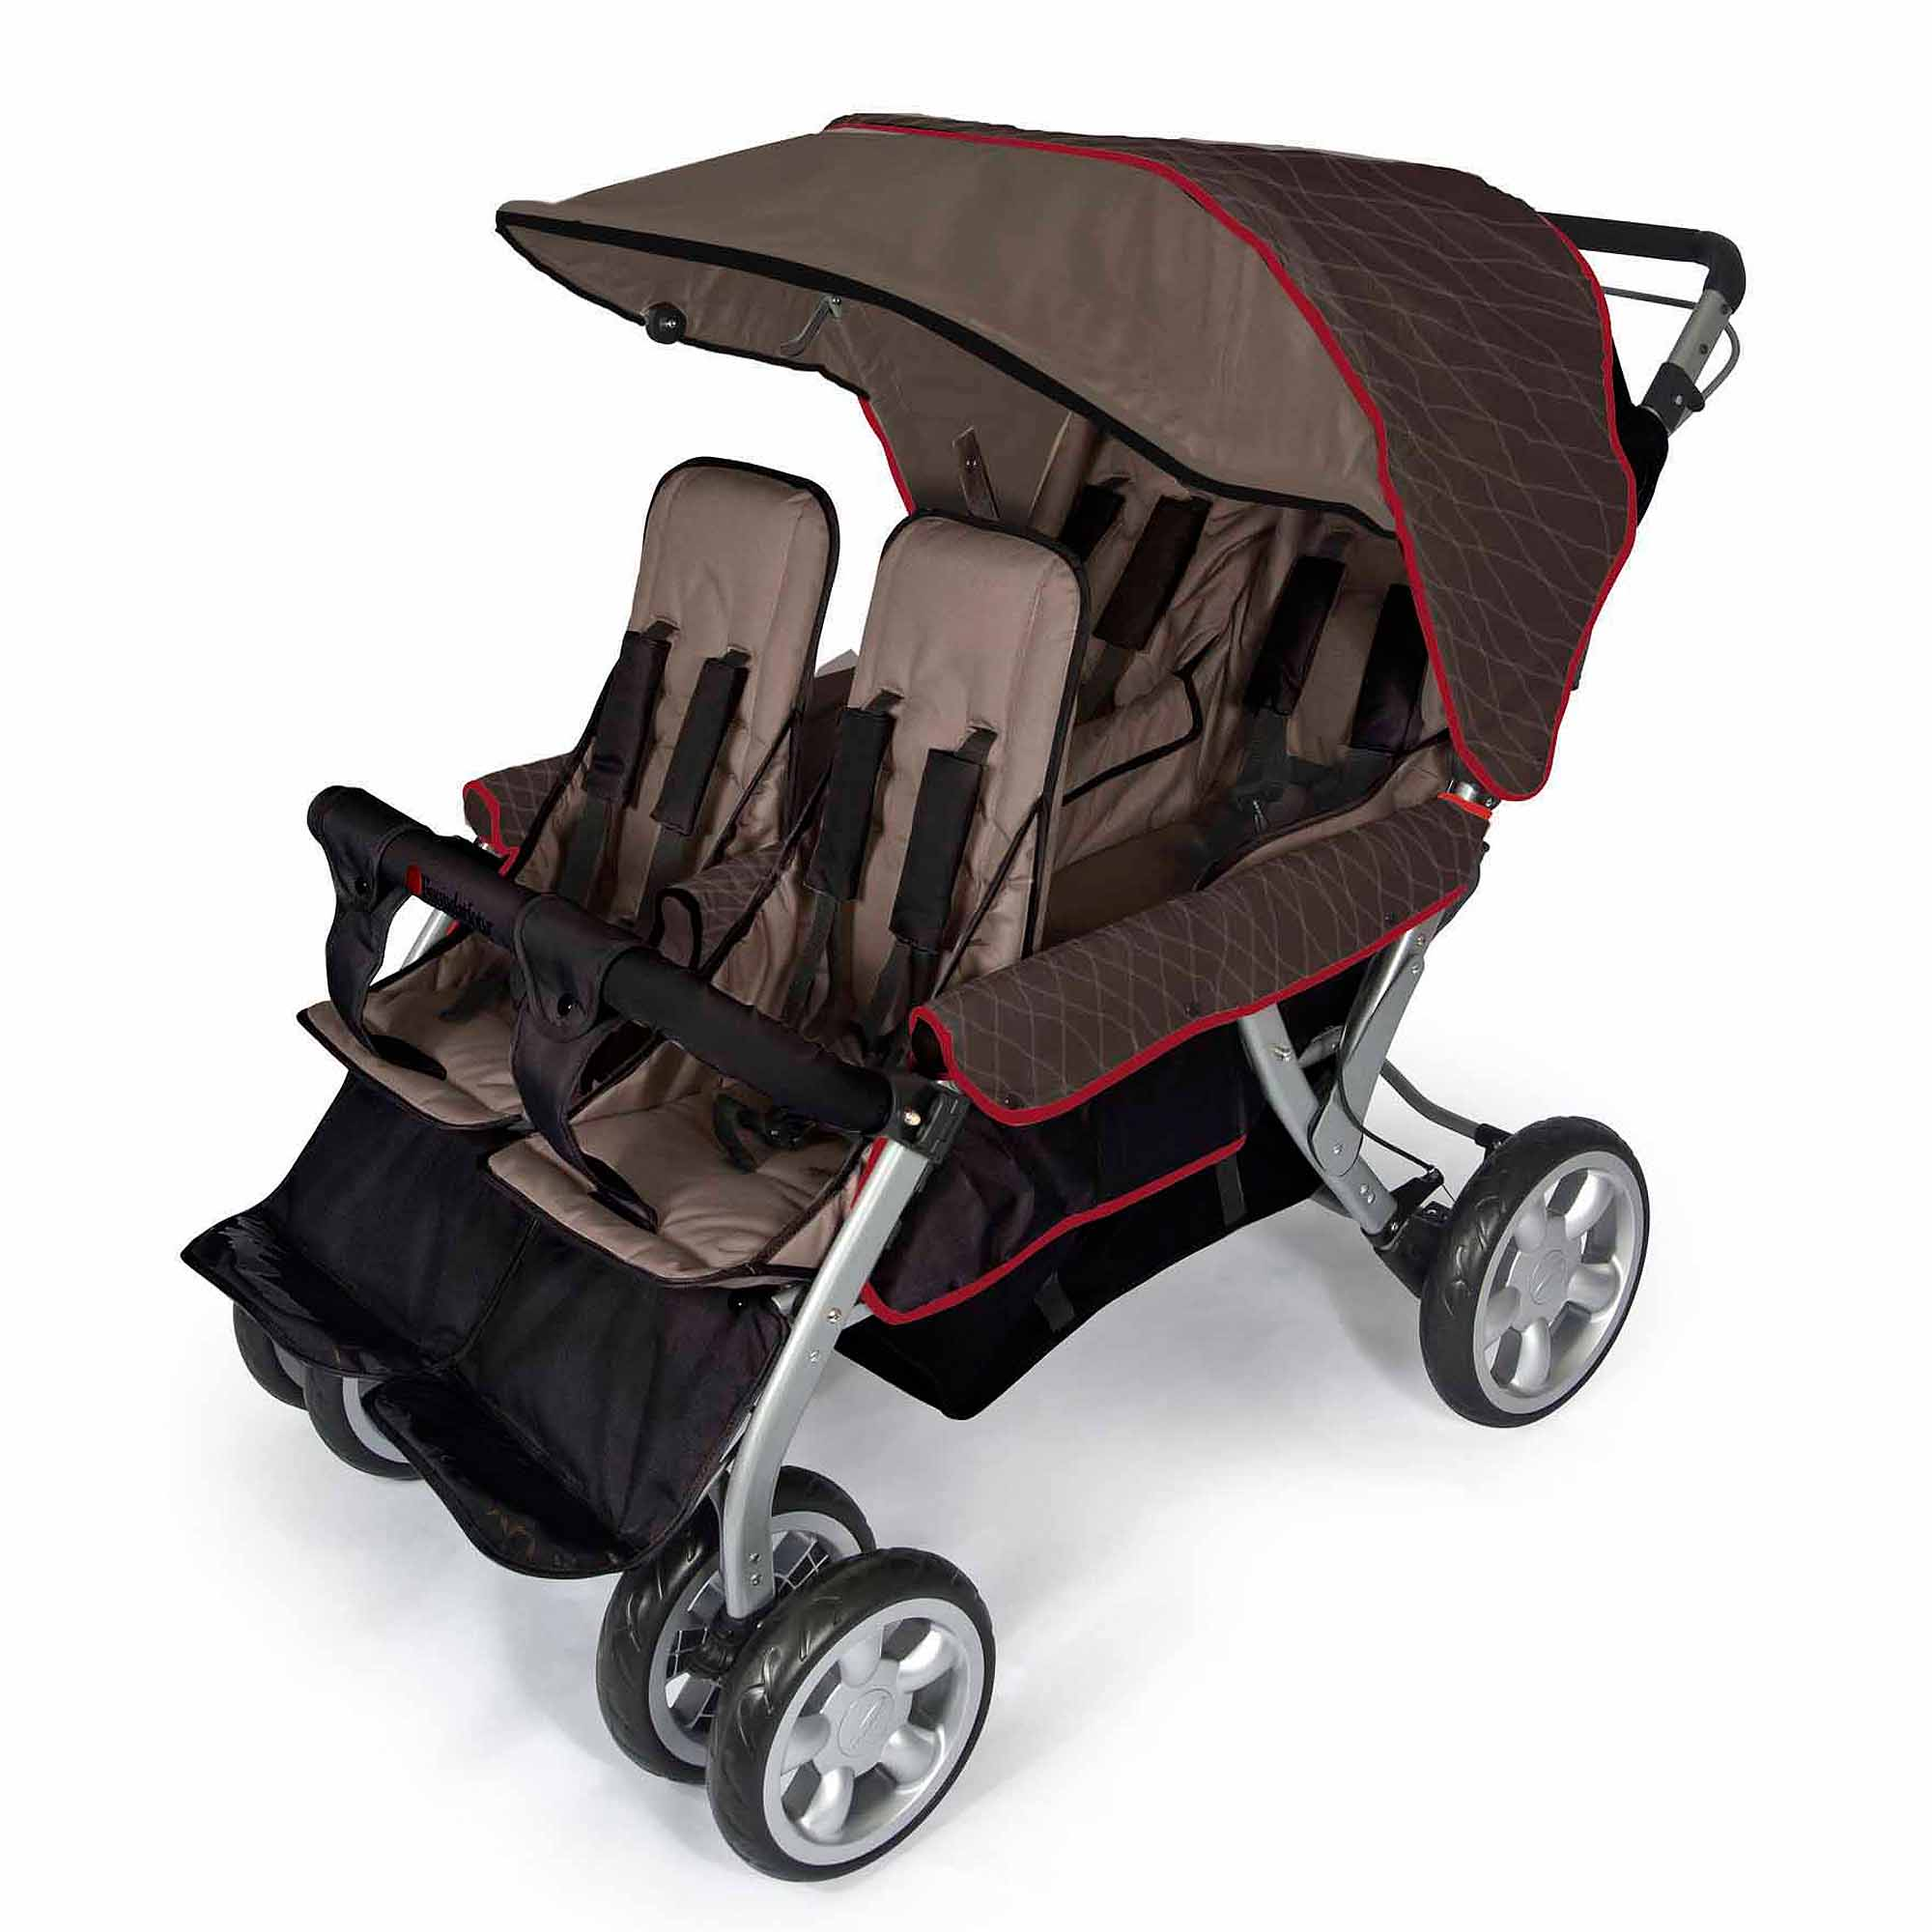 Foundations LX4 4-Passenger Stroller, Earthscape